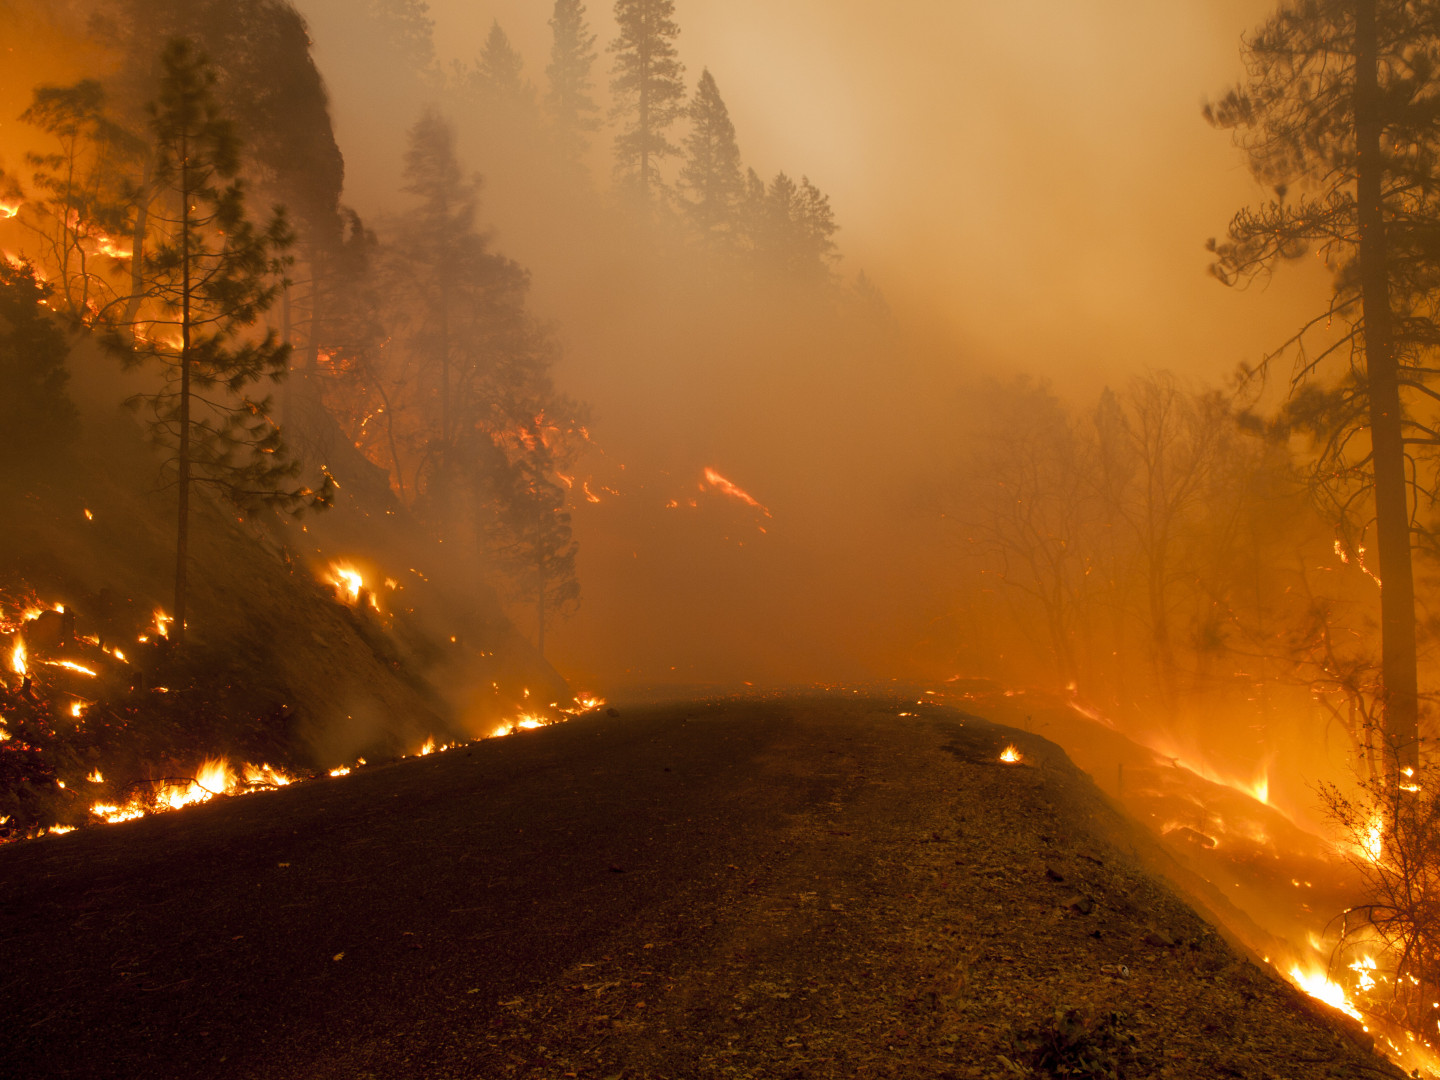 Yosemite Fire: Half Dome Cables to Reopen; Fire Breaks Out in Shasta County